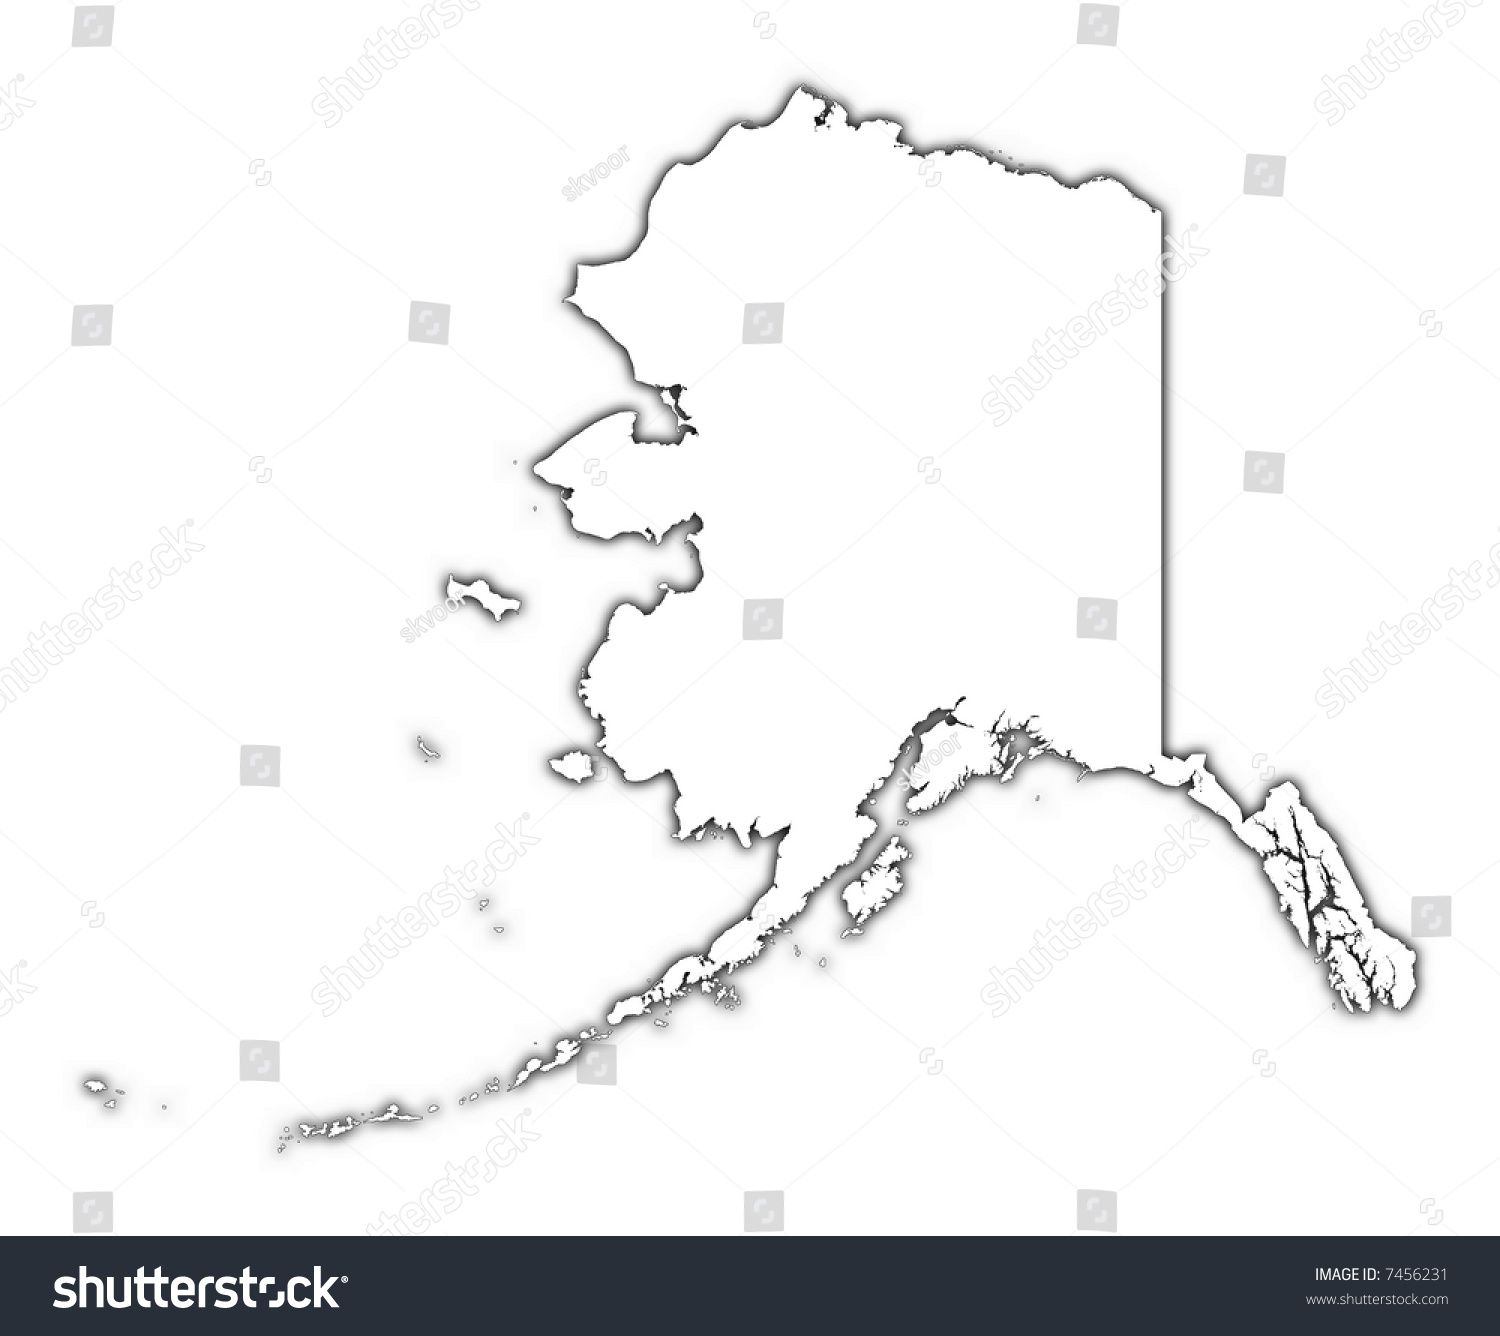 alaska usa outline map with shadow detailed mercator projection